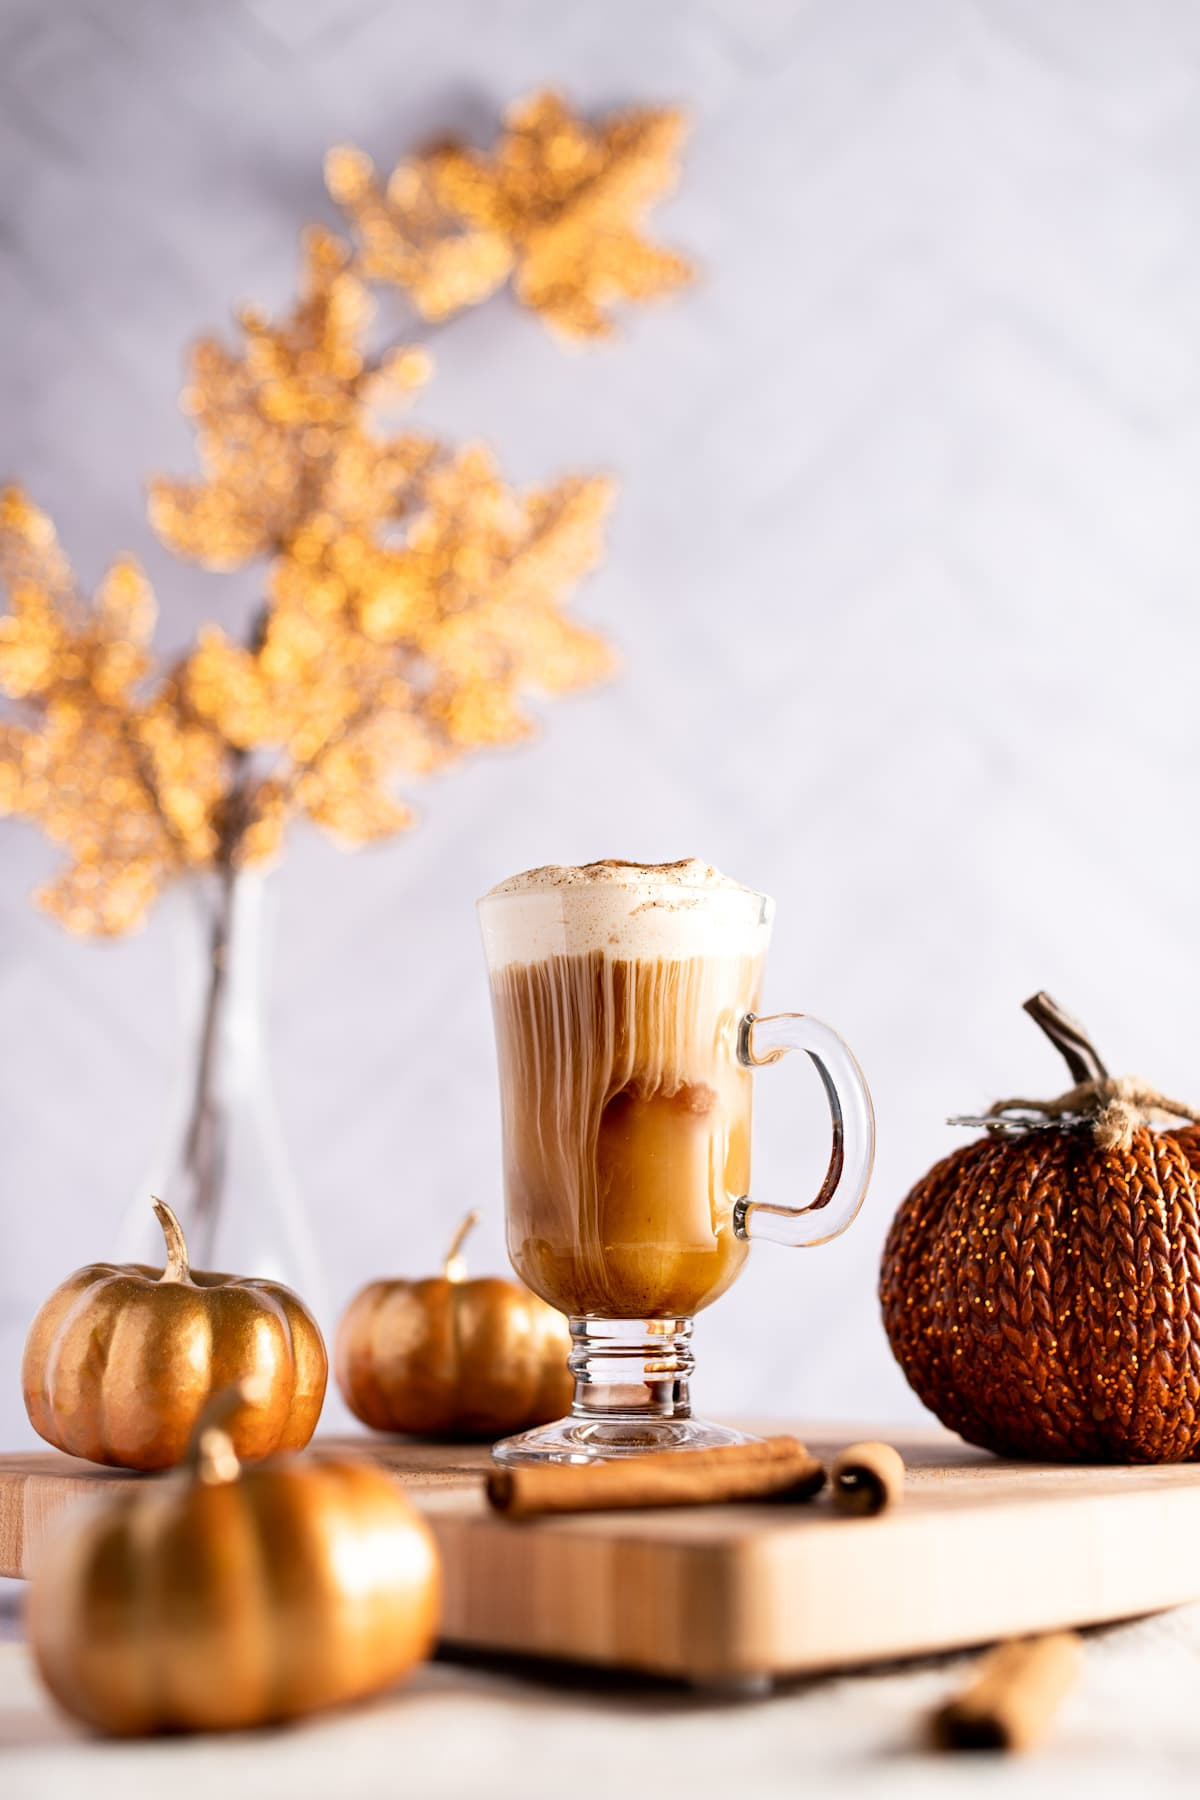 Iced chai latte with pumpkin cold foam on a wooden board, surrounded by decorative pumpkins, and golden leaves in the background.